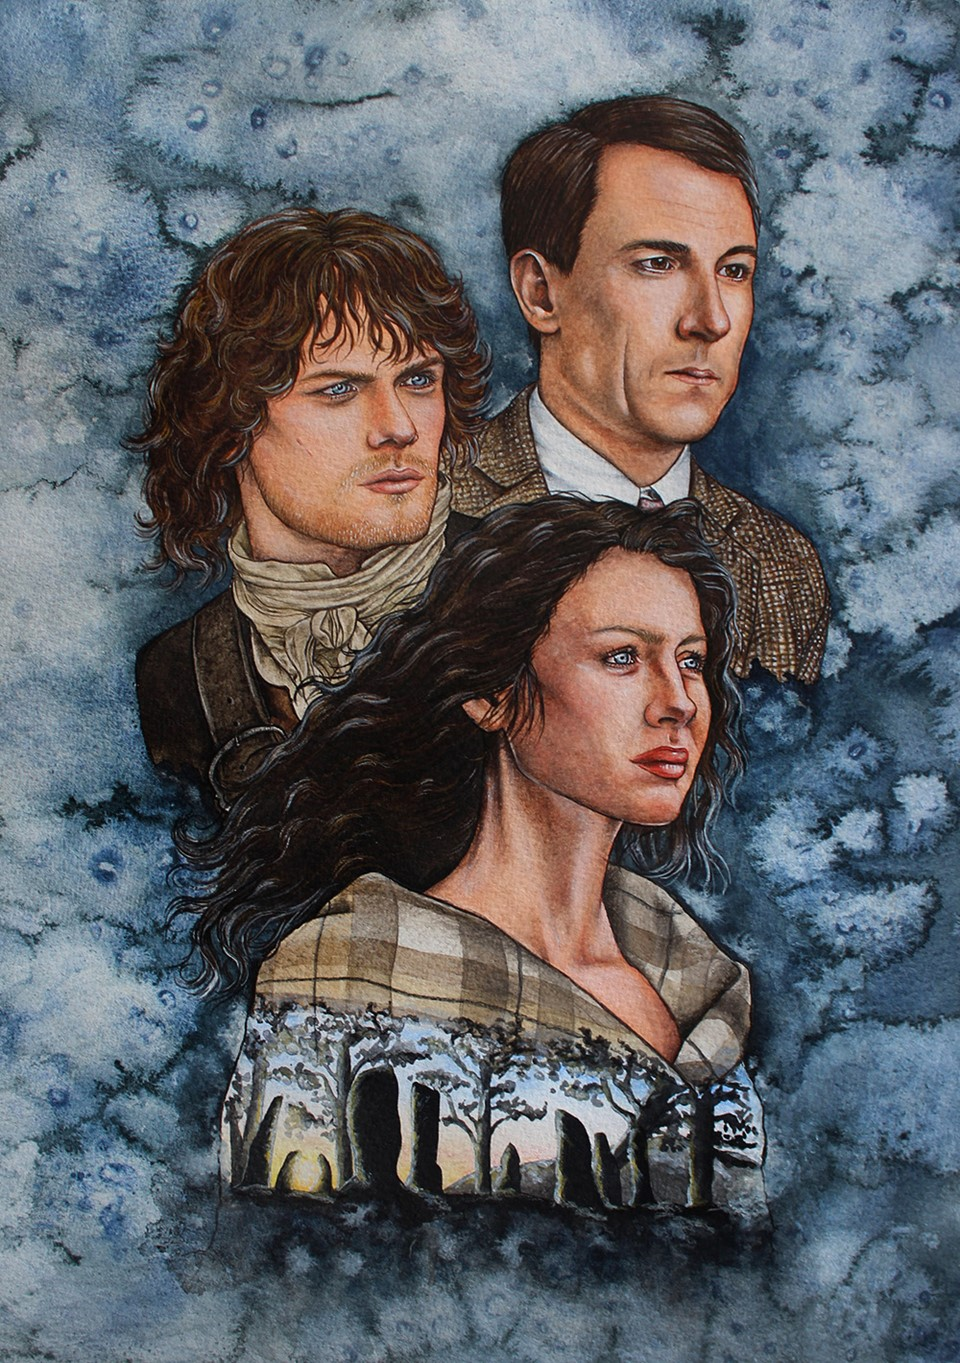 A mixed media portrait of the 3 main protagonists, Jamie Fraser, Claire Beauchamp, and Frank Randall. in the TV series Outlander.